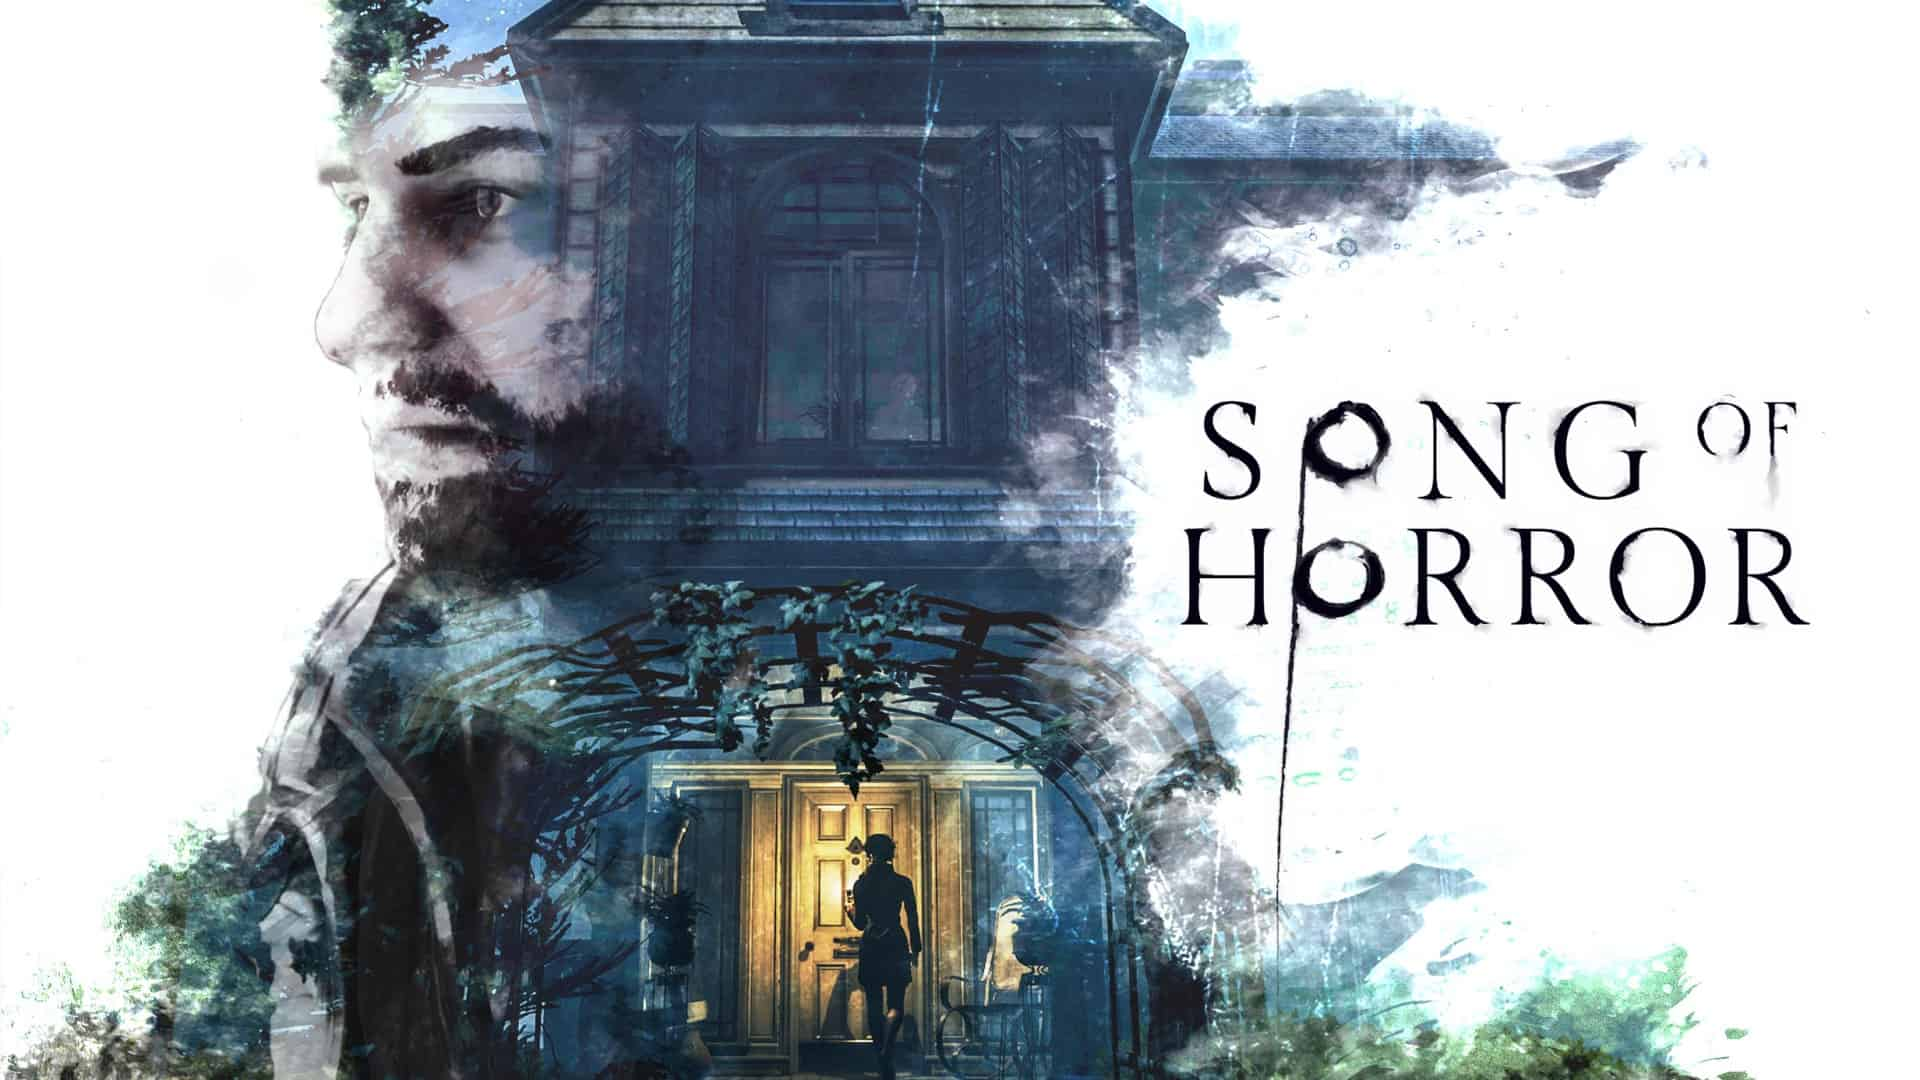 song of horror key art - Song Of Horror Concludes With Episode 5 May 14th